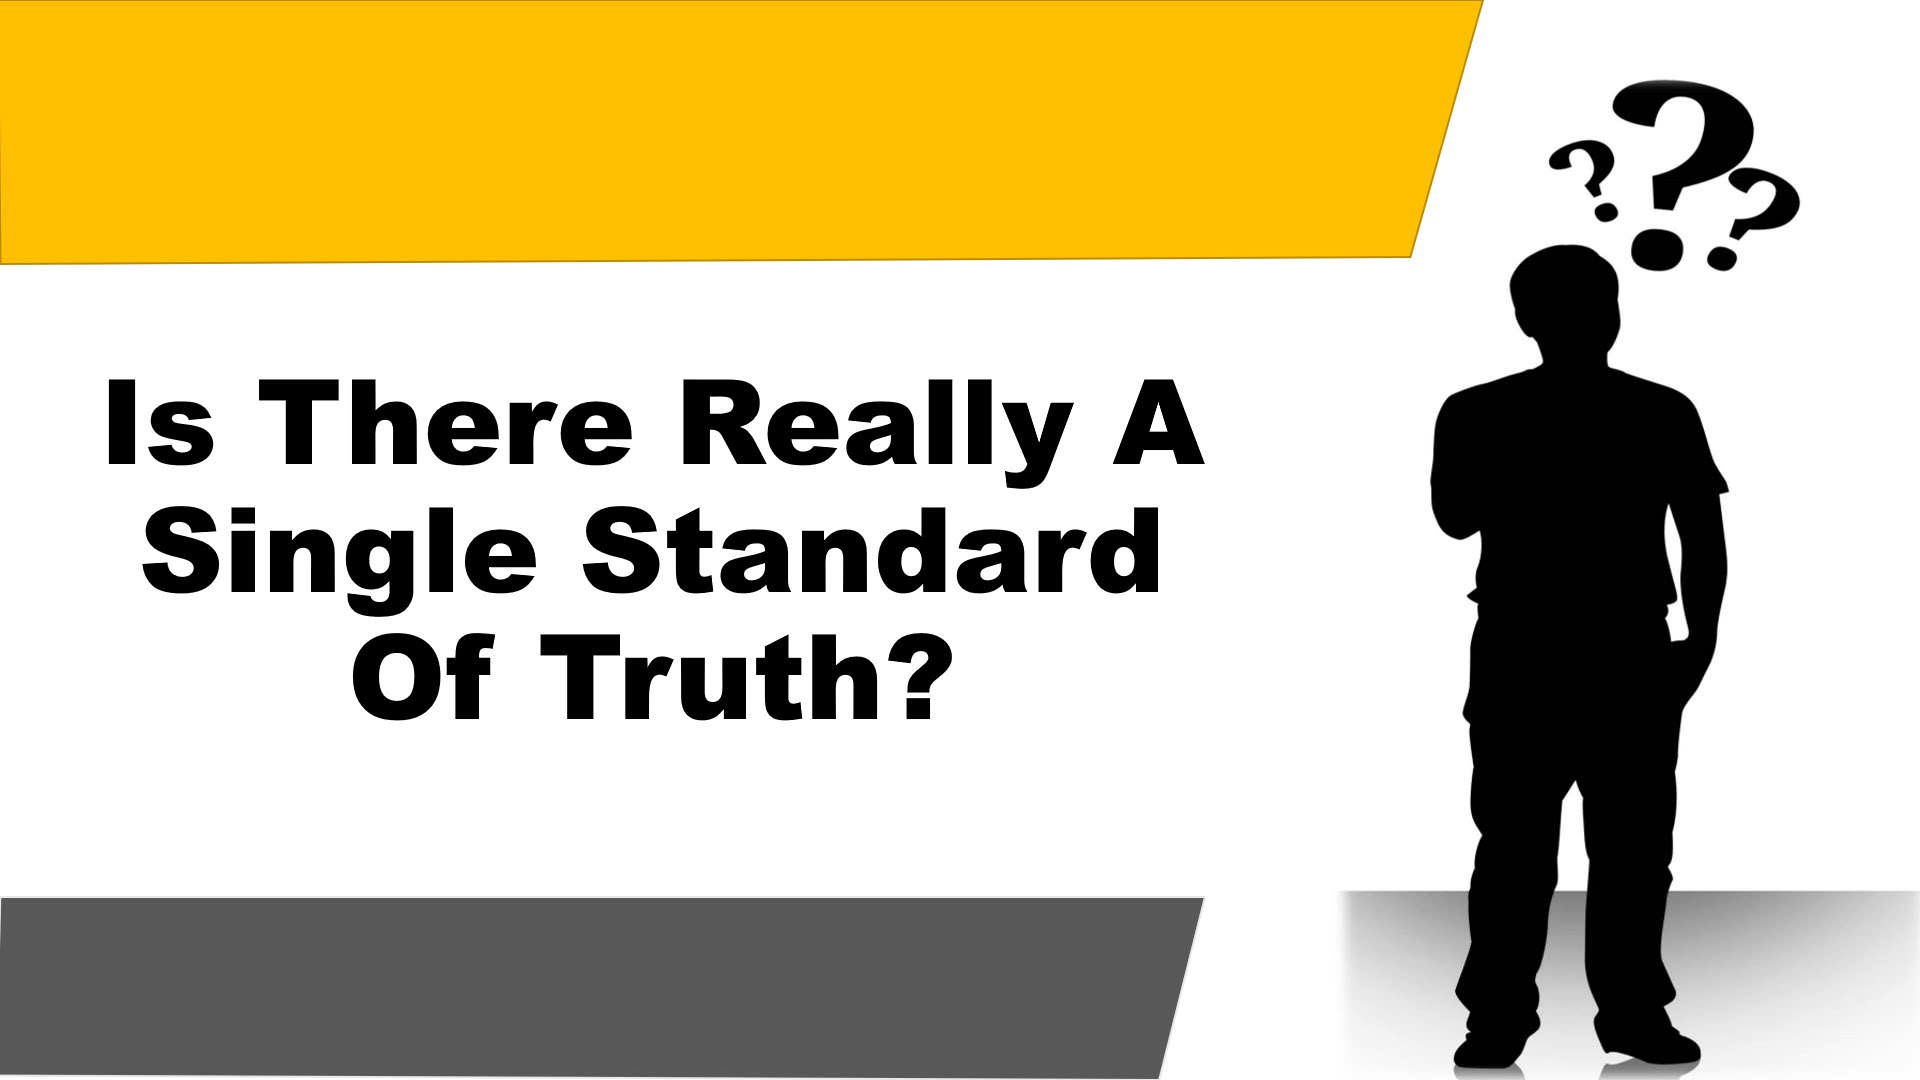 Is There Really A Single Standard Of Truth?